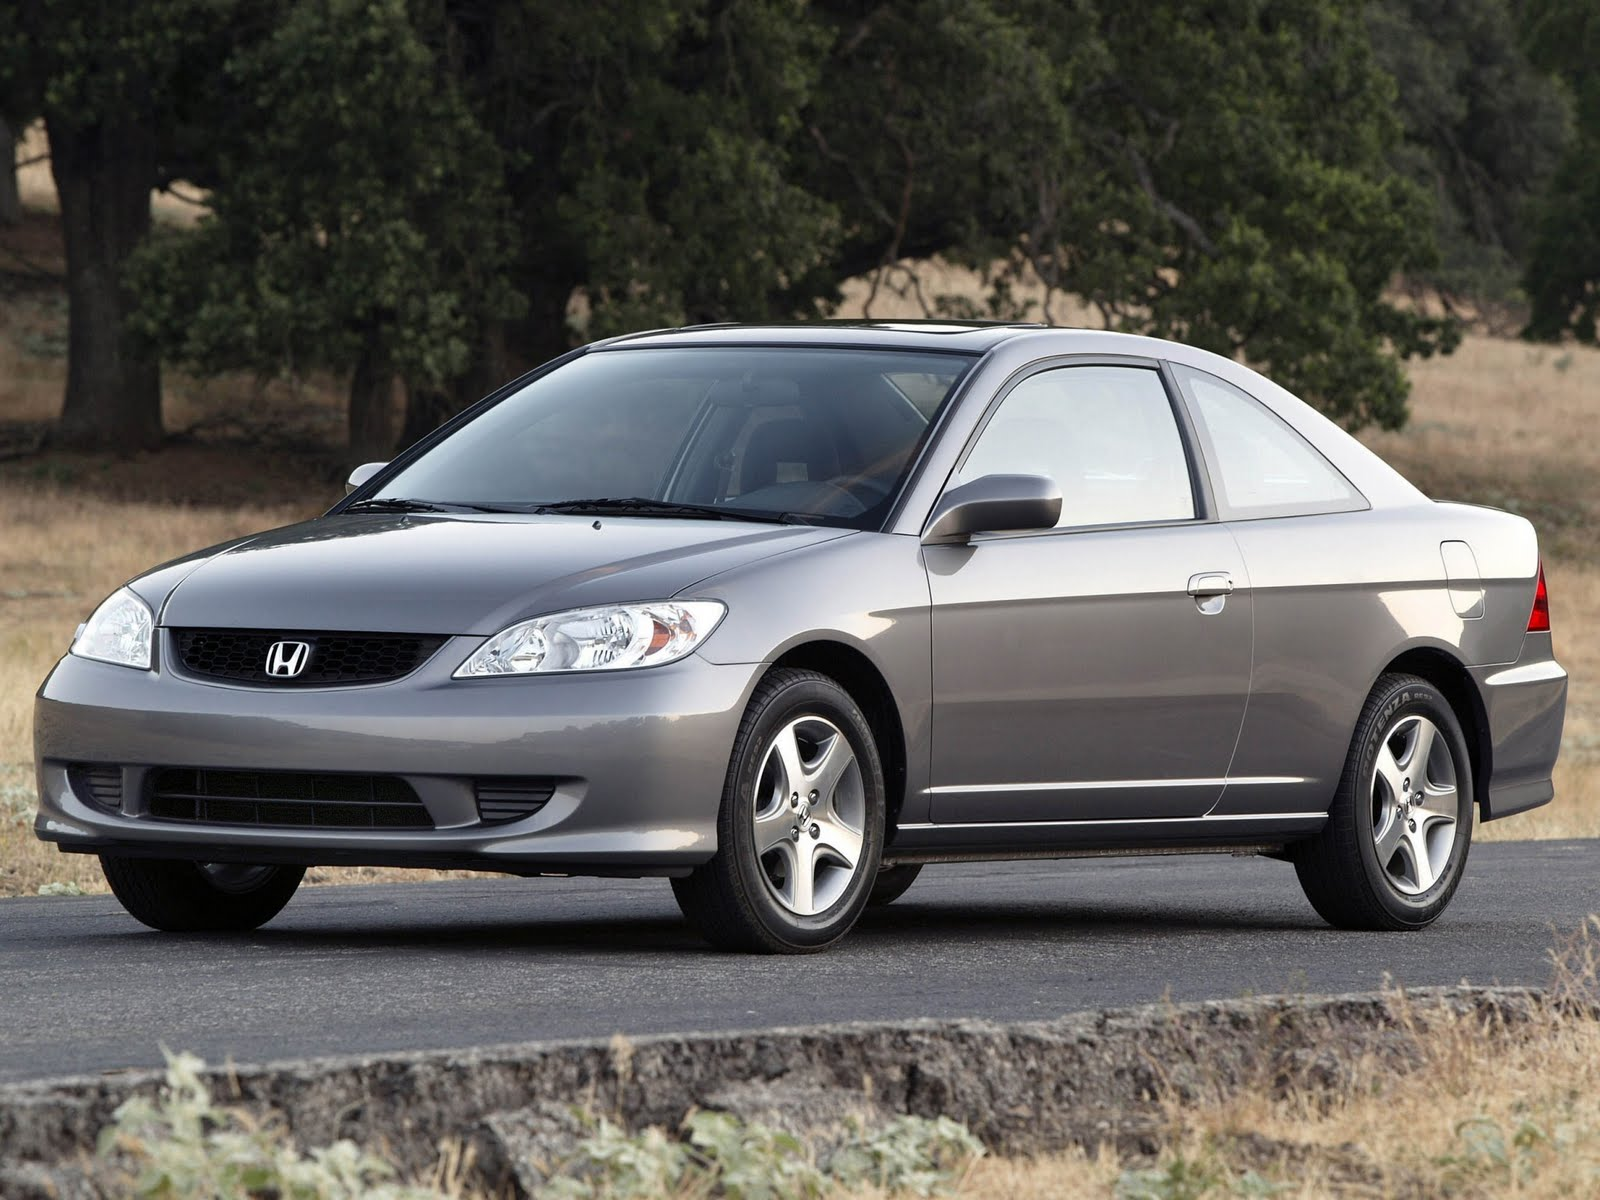 The Por Honda Civic Coupe And Sedan Features A New For 2005 Special Edition Package That Gets Rear Spoiler An Mp3 Compatible Six Cd Stereo